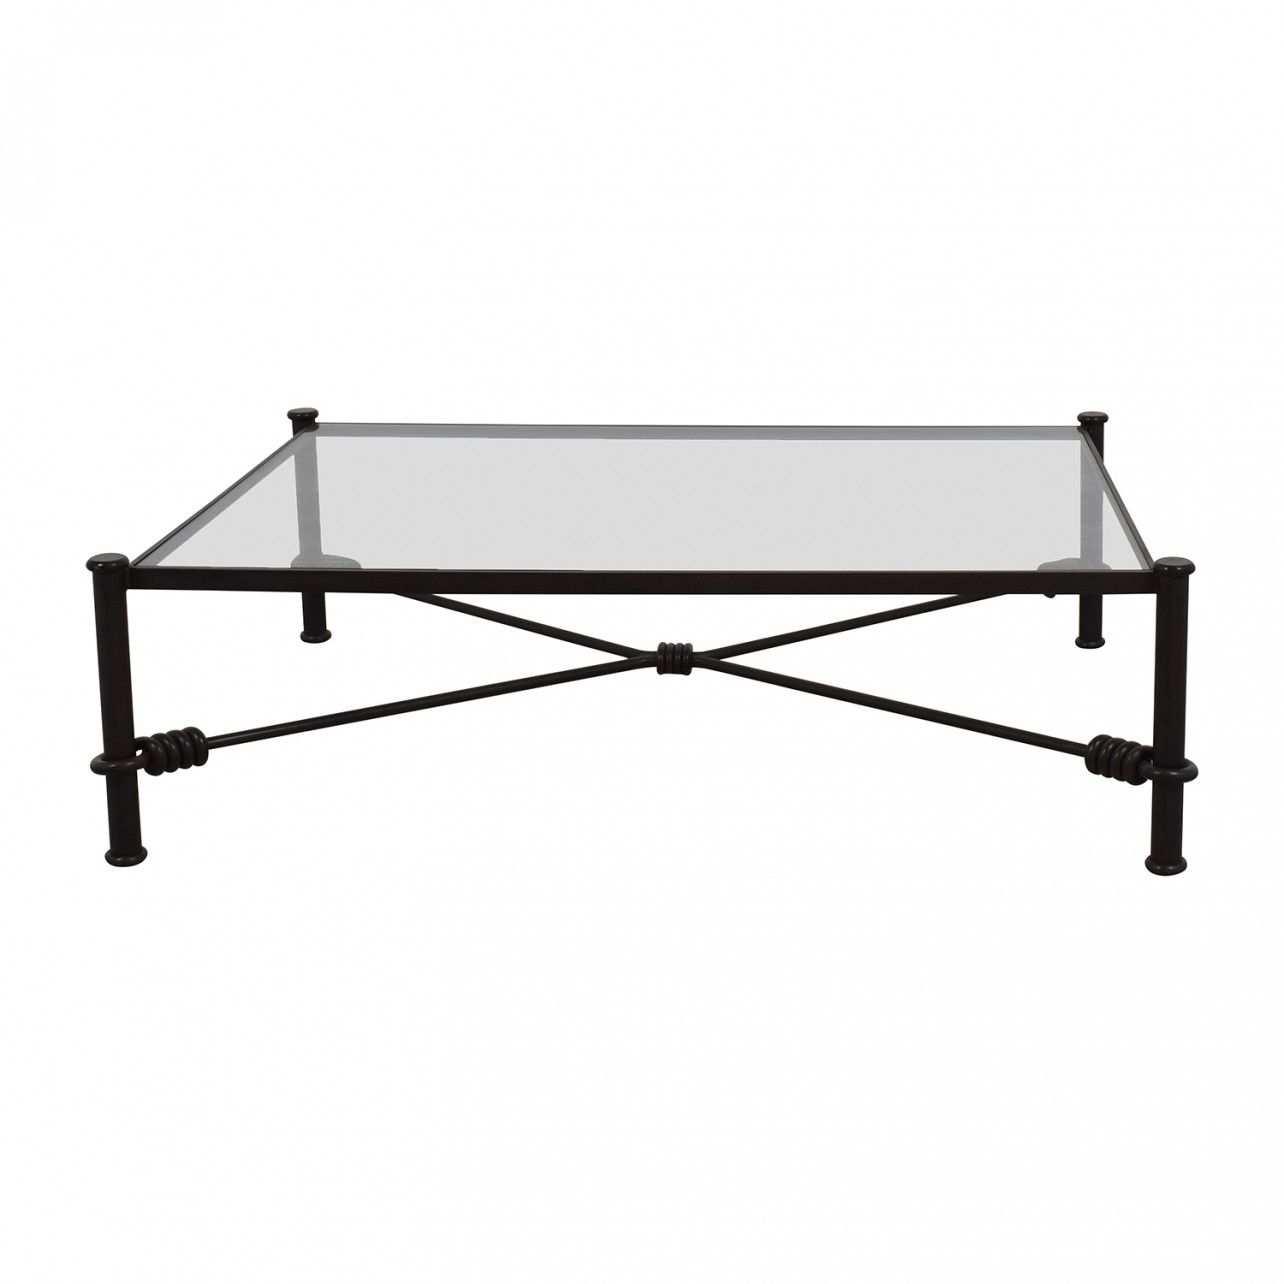 50 Elegant Cast Iron And Glass Coffee Table 2020 Wrought Iron Glass Iron Coffee Table Glass Coffee Table [ 1284 x 1284 Pixel ]